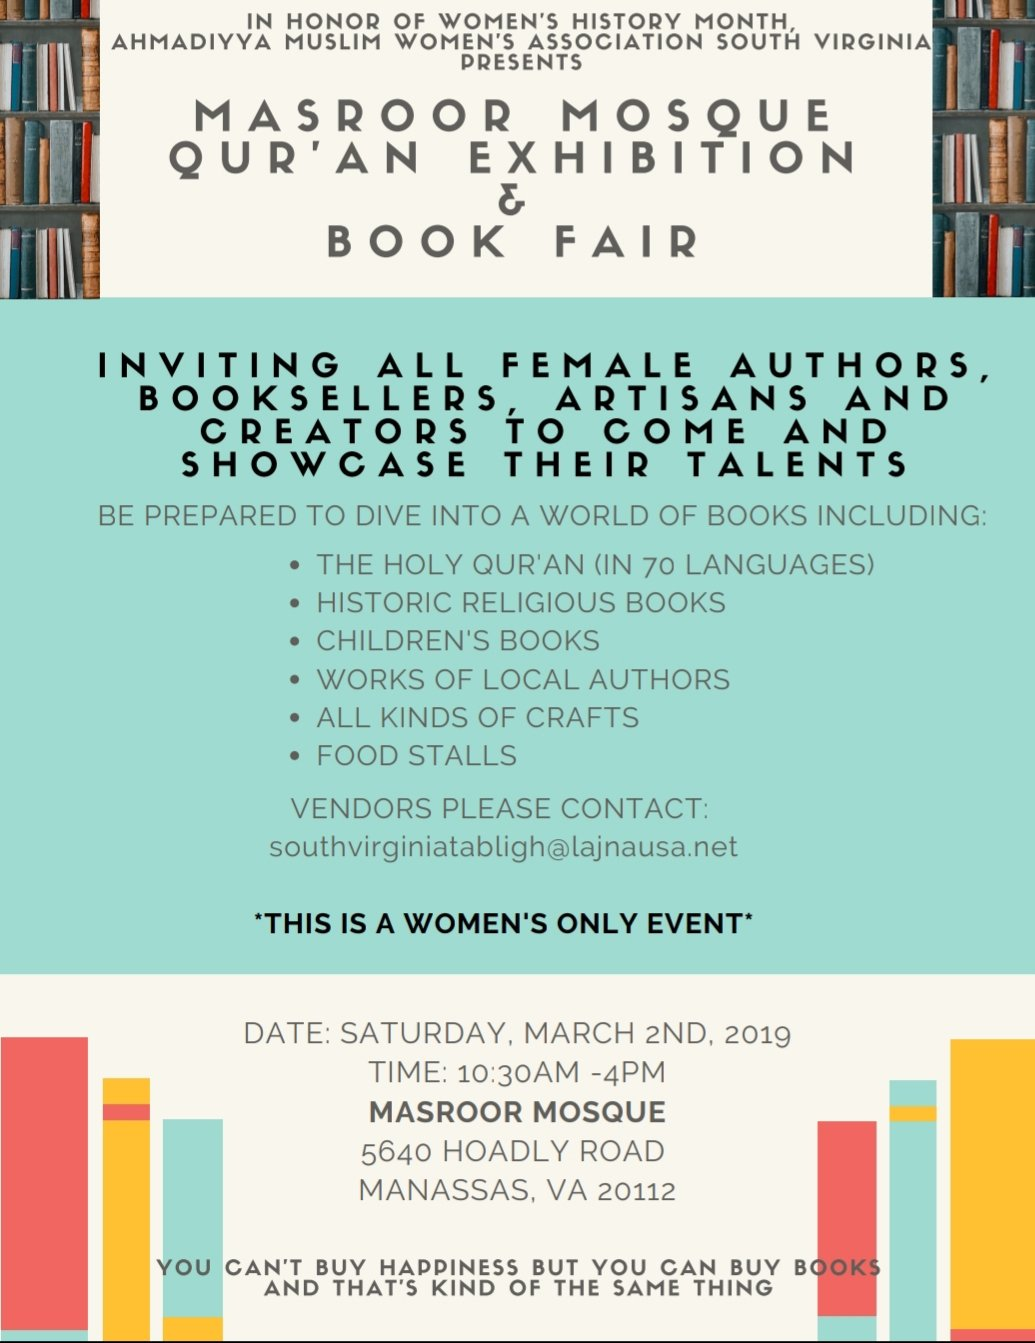 Masroor Mosque, womens history month, book fair